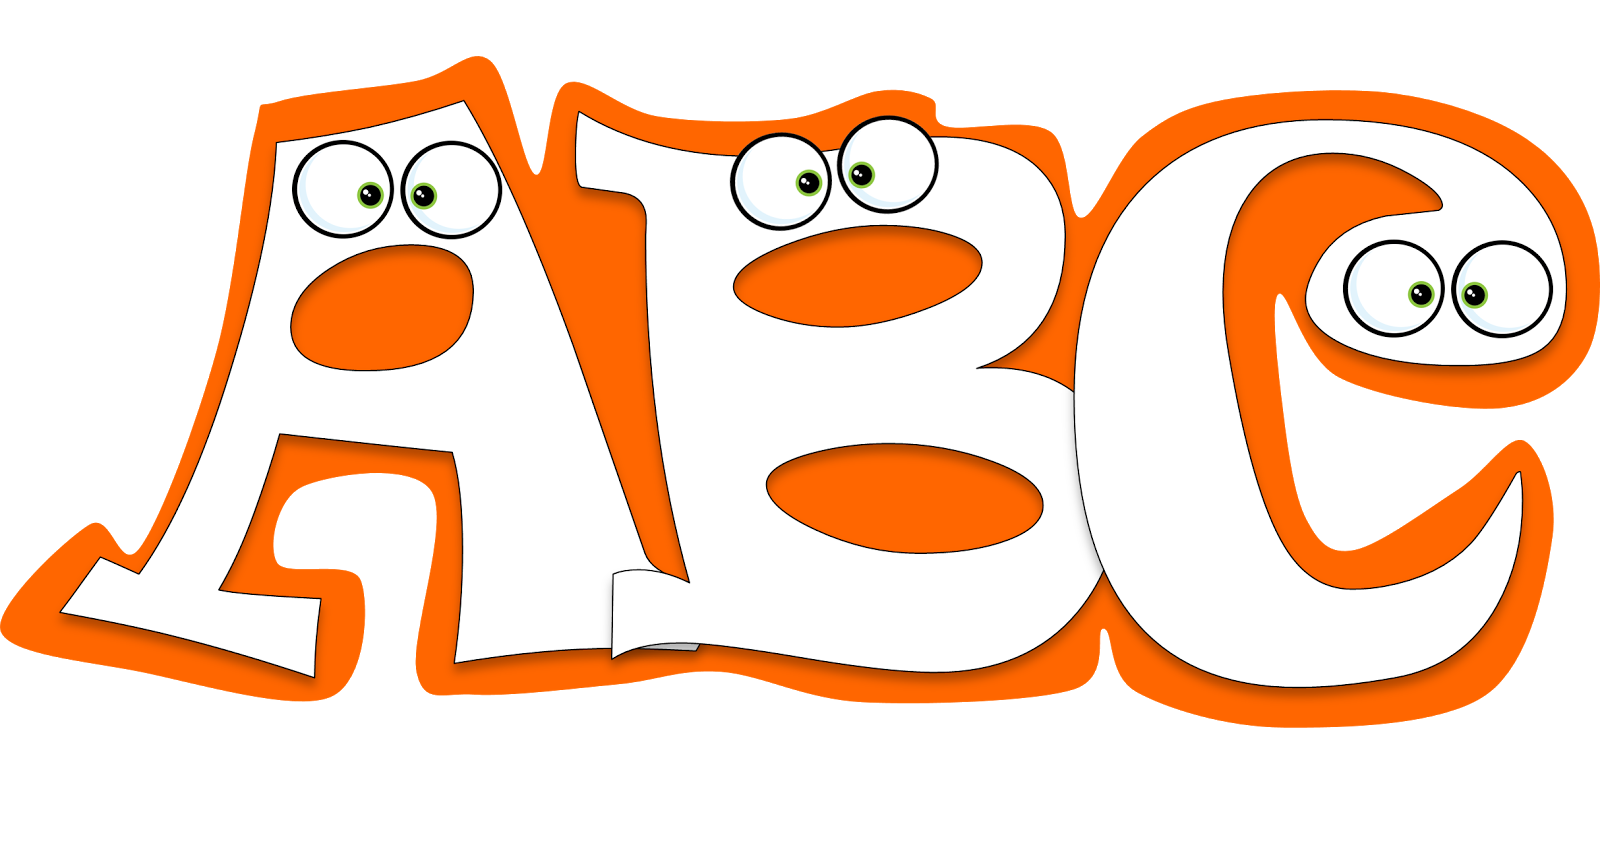 Abcs on a wheel clipart clipart images gallery for free.